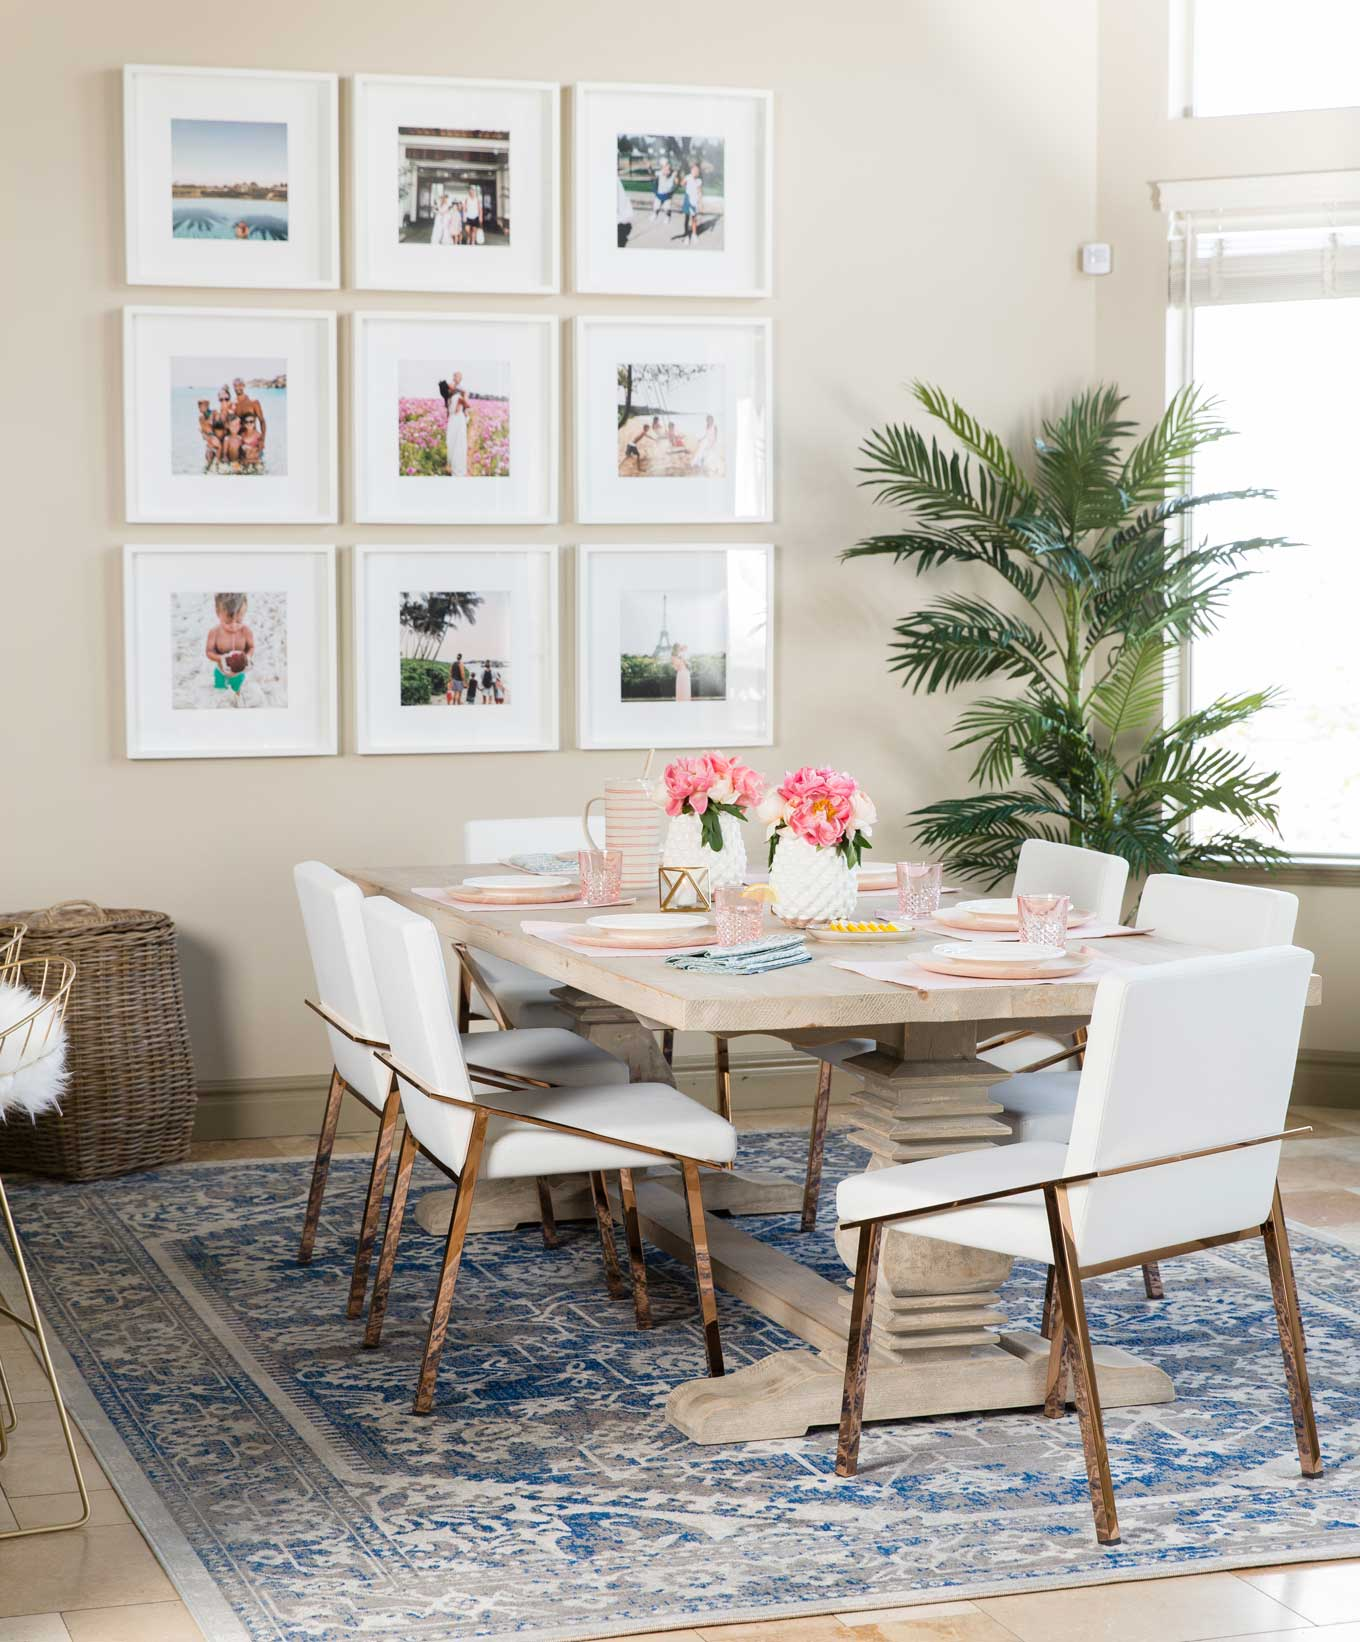 This rug placement leaves enough room for the chairs around the table to move! It's a perfect size for the dining room table and mimics the size and shape of the table, pulling the whole room together.